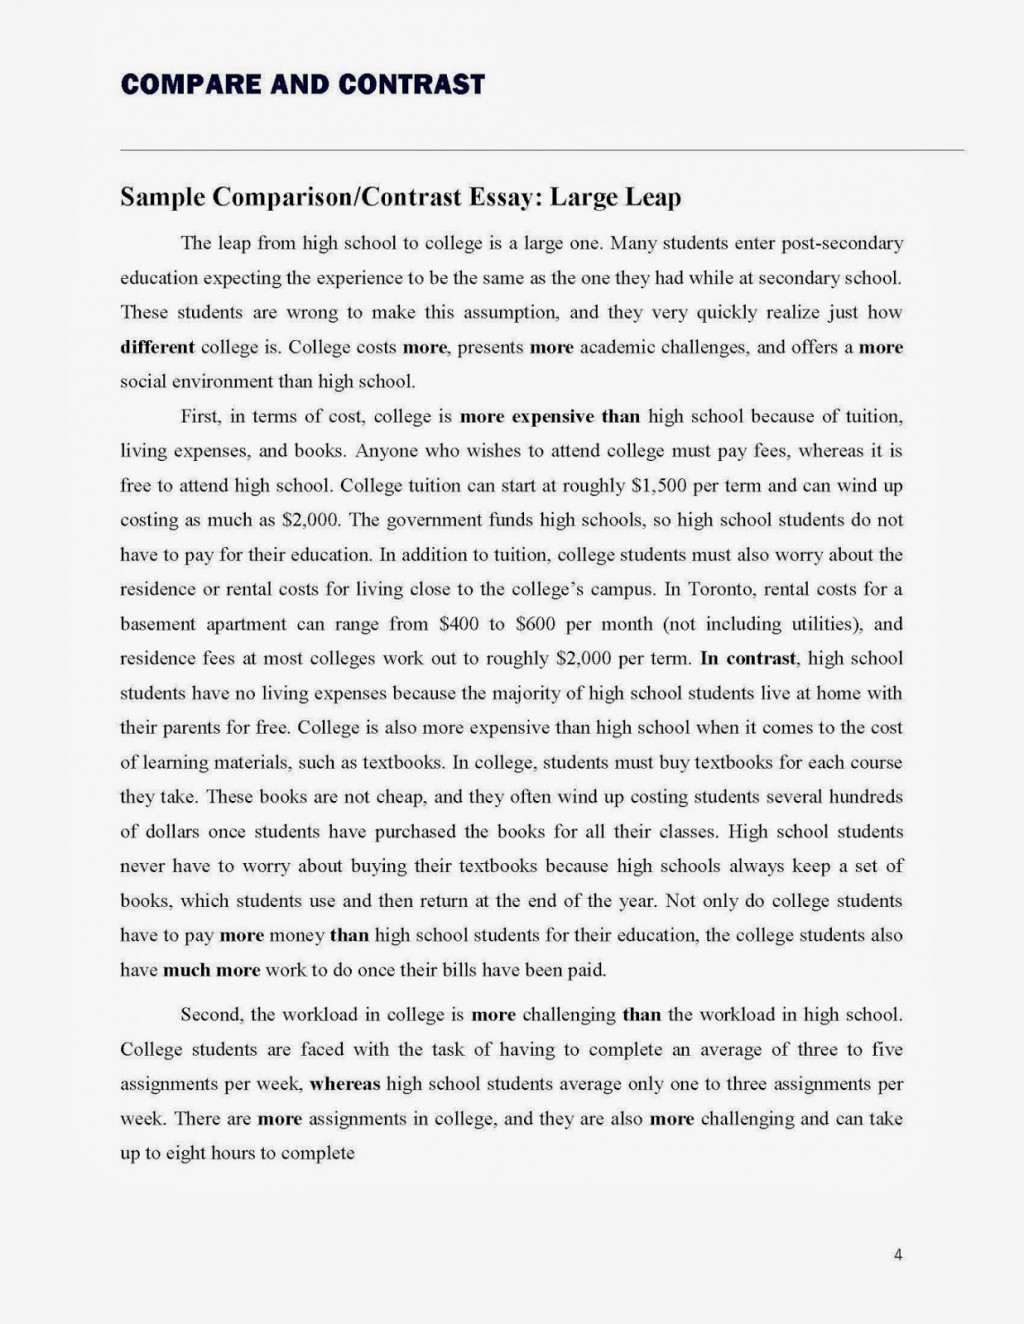 005 Contrast Essay Compareandcontrastessay Page 4h125 Fantastic Words Compare Outline Middle School Topics High Large